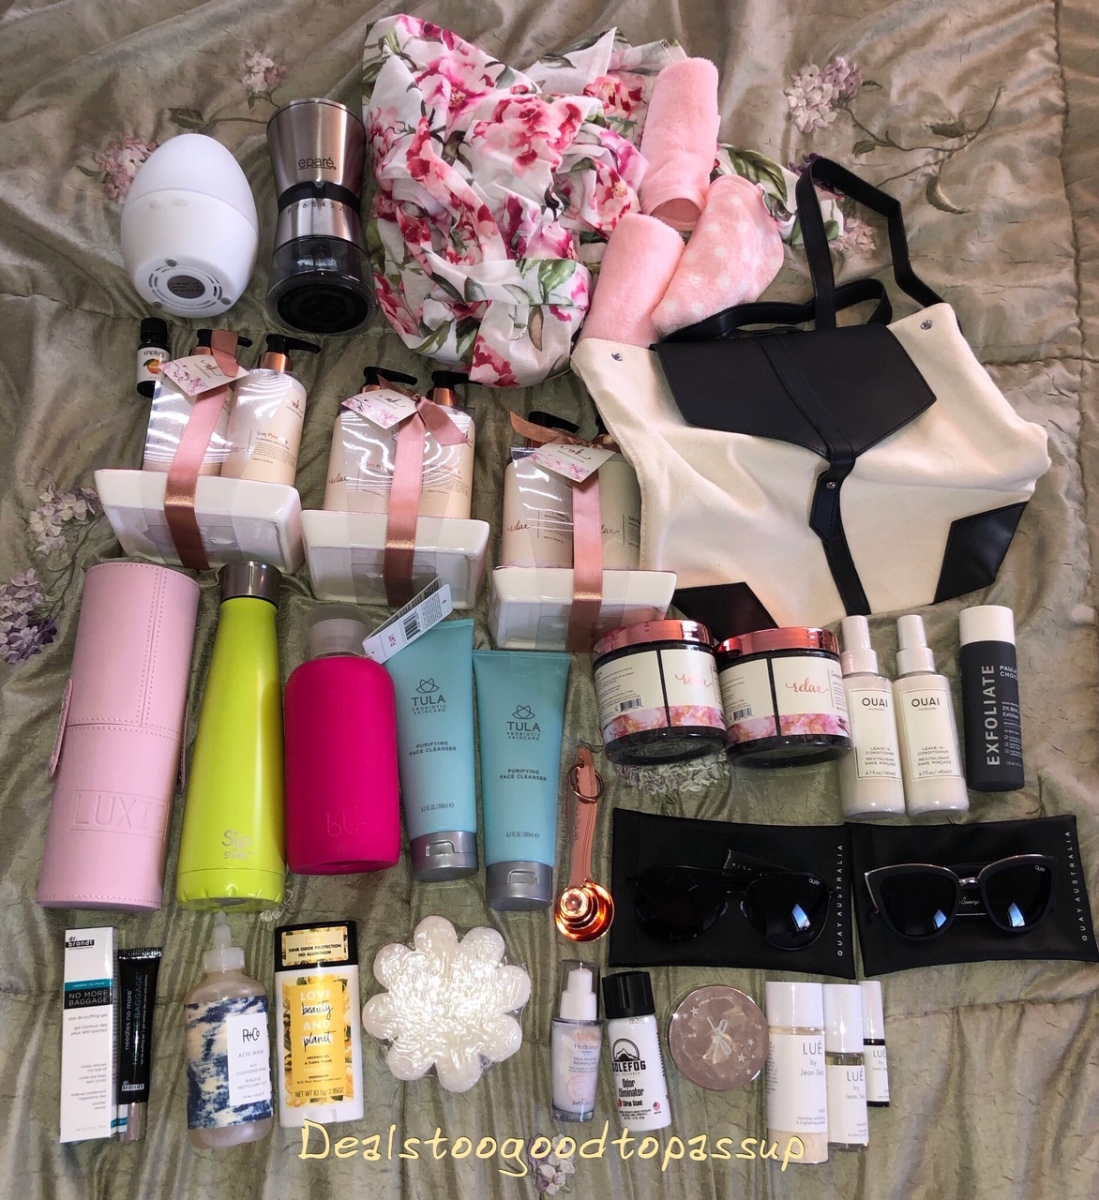 Fab Finds Summer Sale Items Too Good To Resist: FabFitFun Spring 2019 Subscription Box Review With A Lot